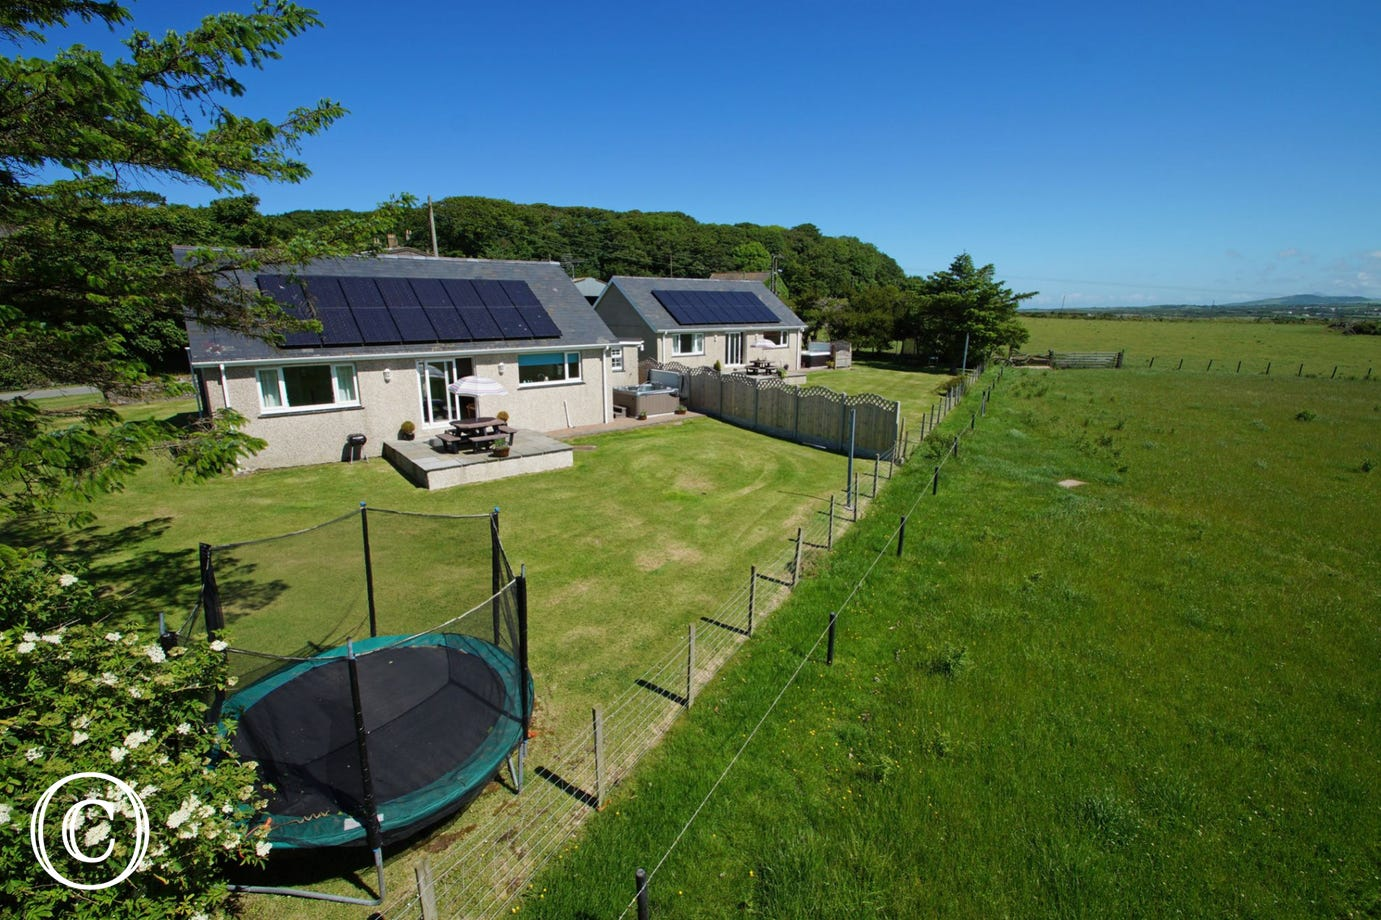 Minffordd (furthest) is one of two 5 star cottages on site - each with its own enclosed garden and hot tub